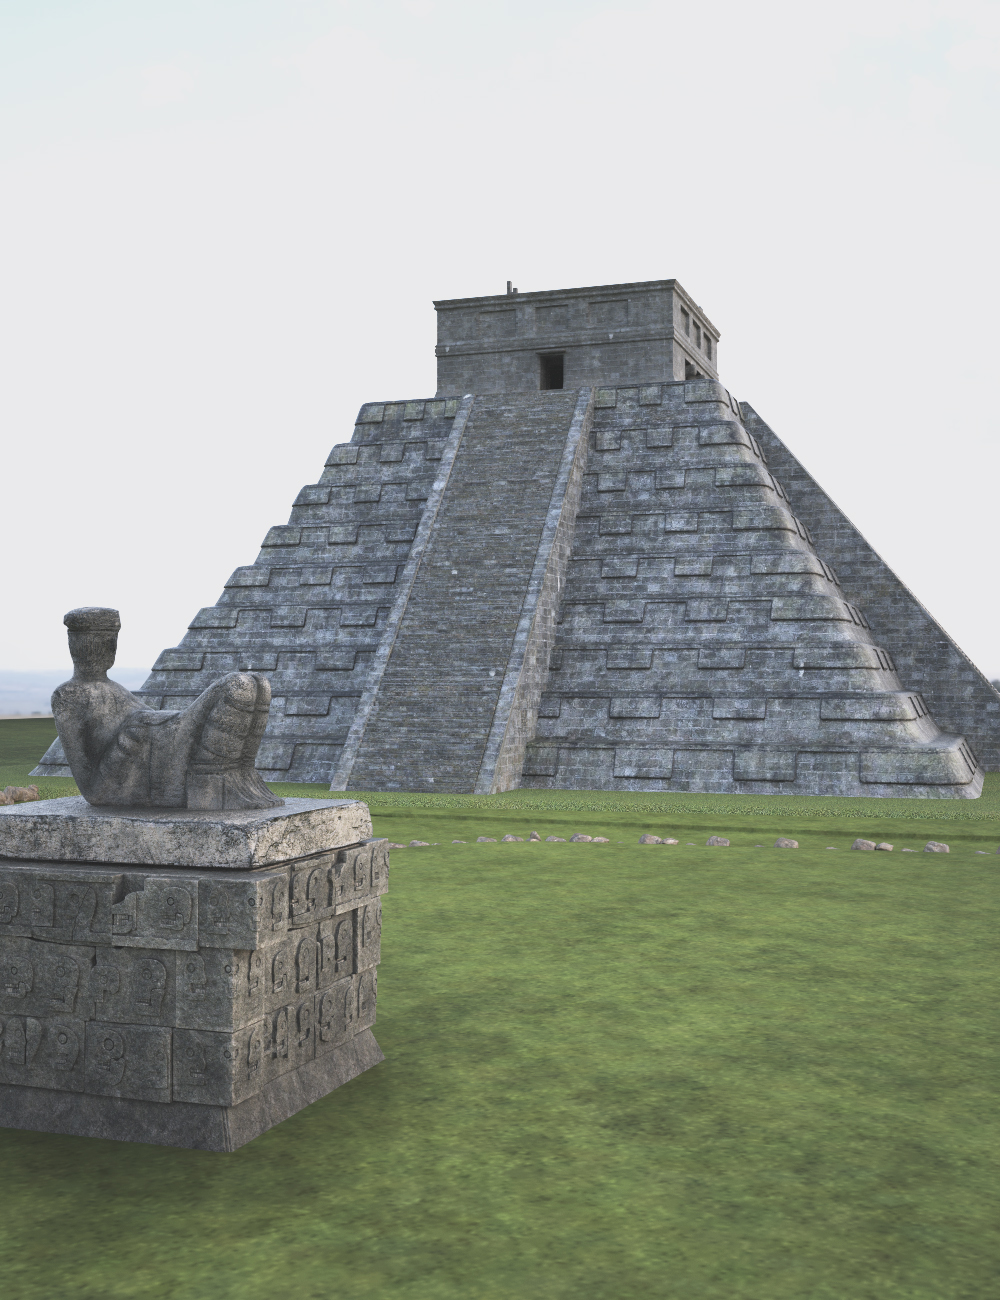 Mayan Pyramid by: Charlie, 3D Models by Daz 3D